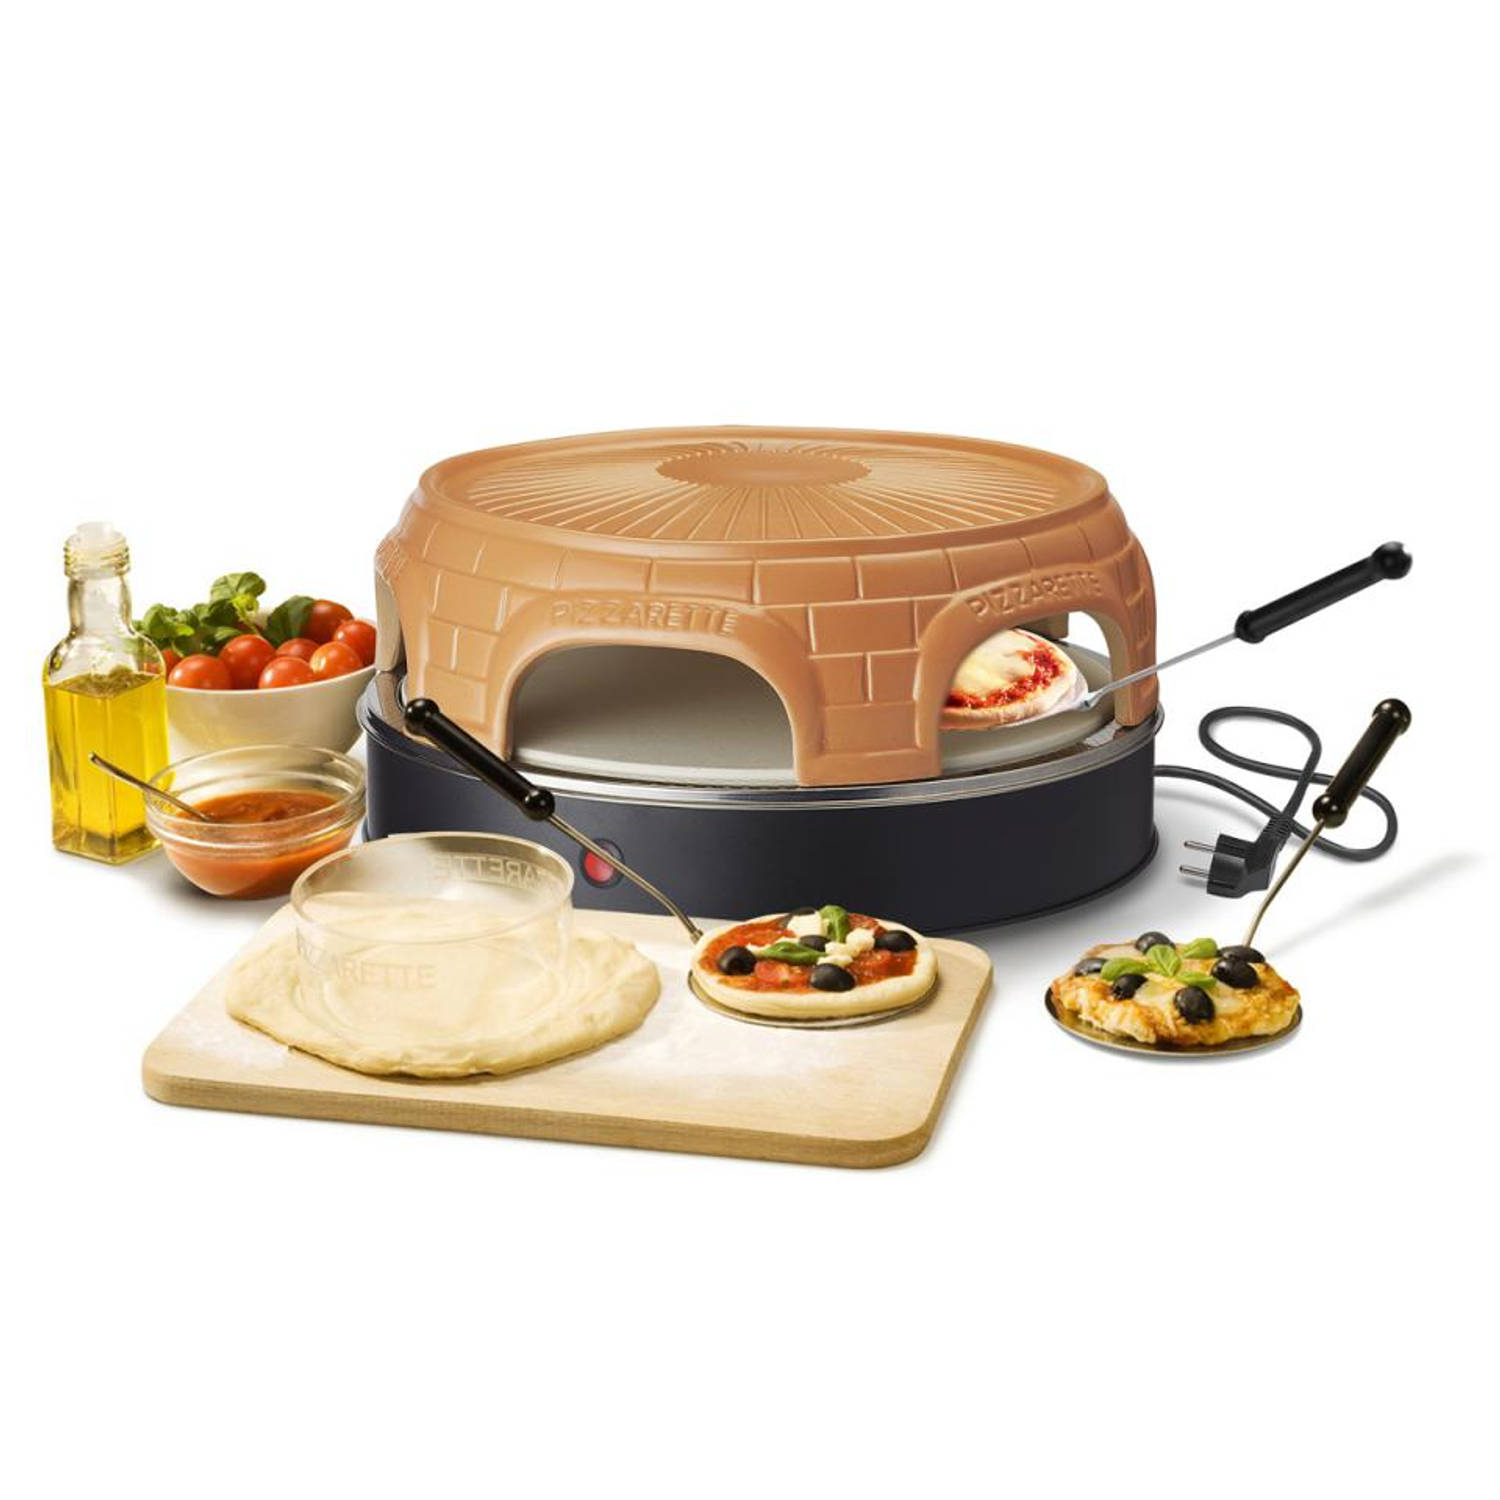 Emerio pizzarette Stone - PO-116100